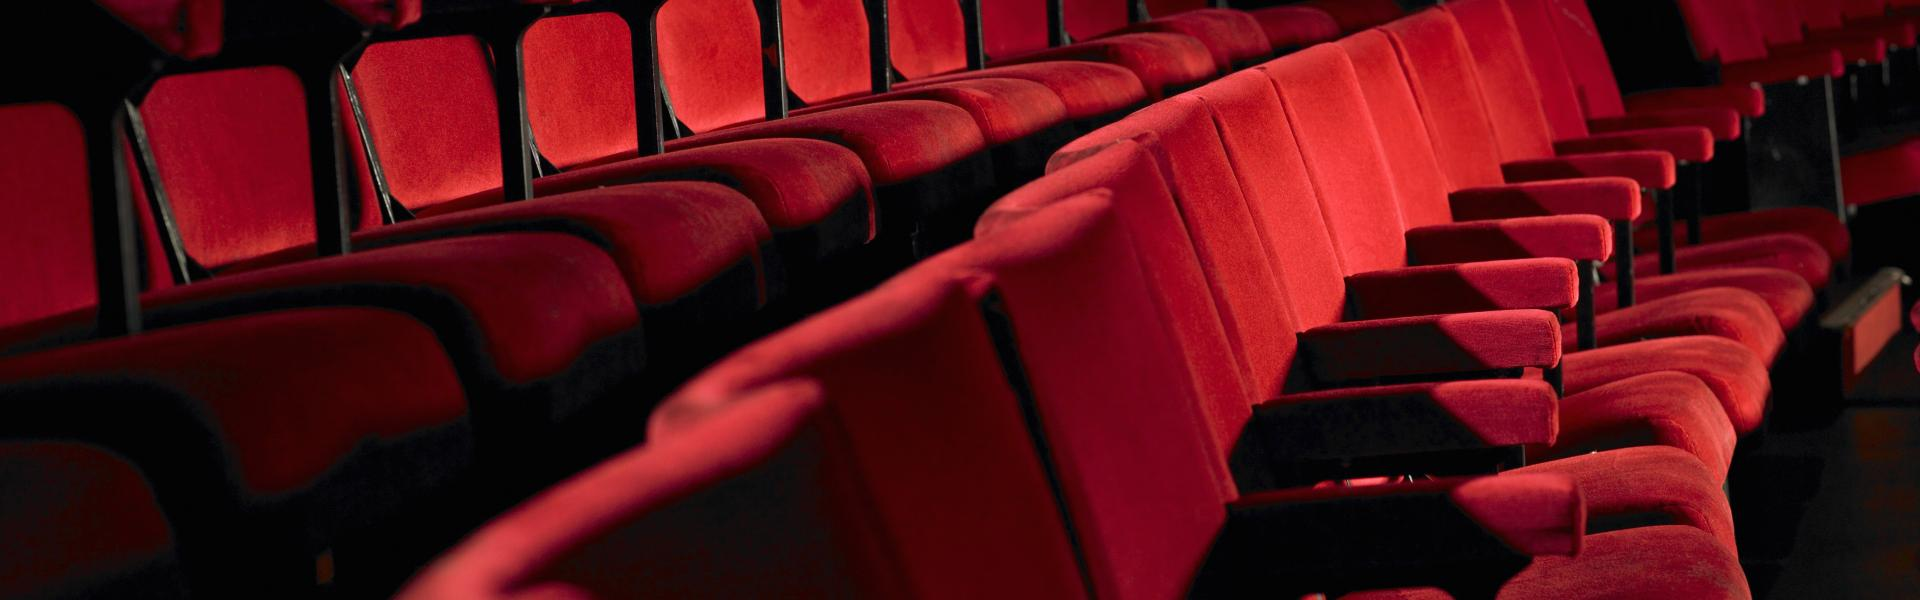 Stage Entertainment Adapts Digital Strategy to Engage Customers